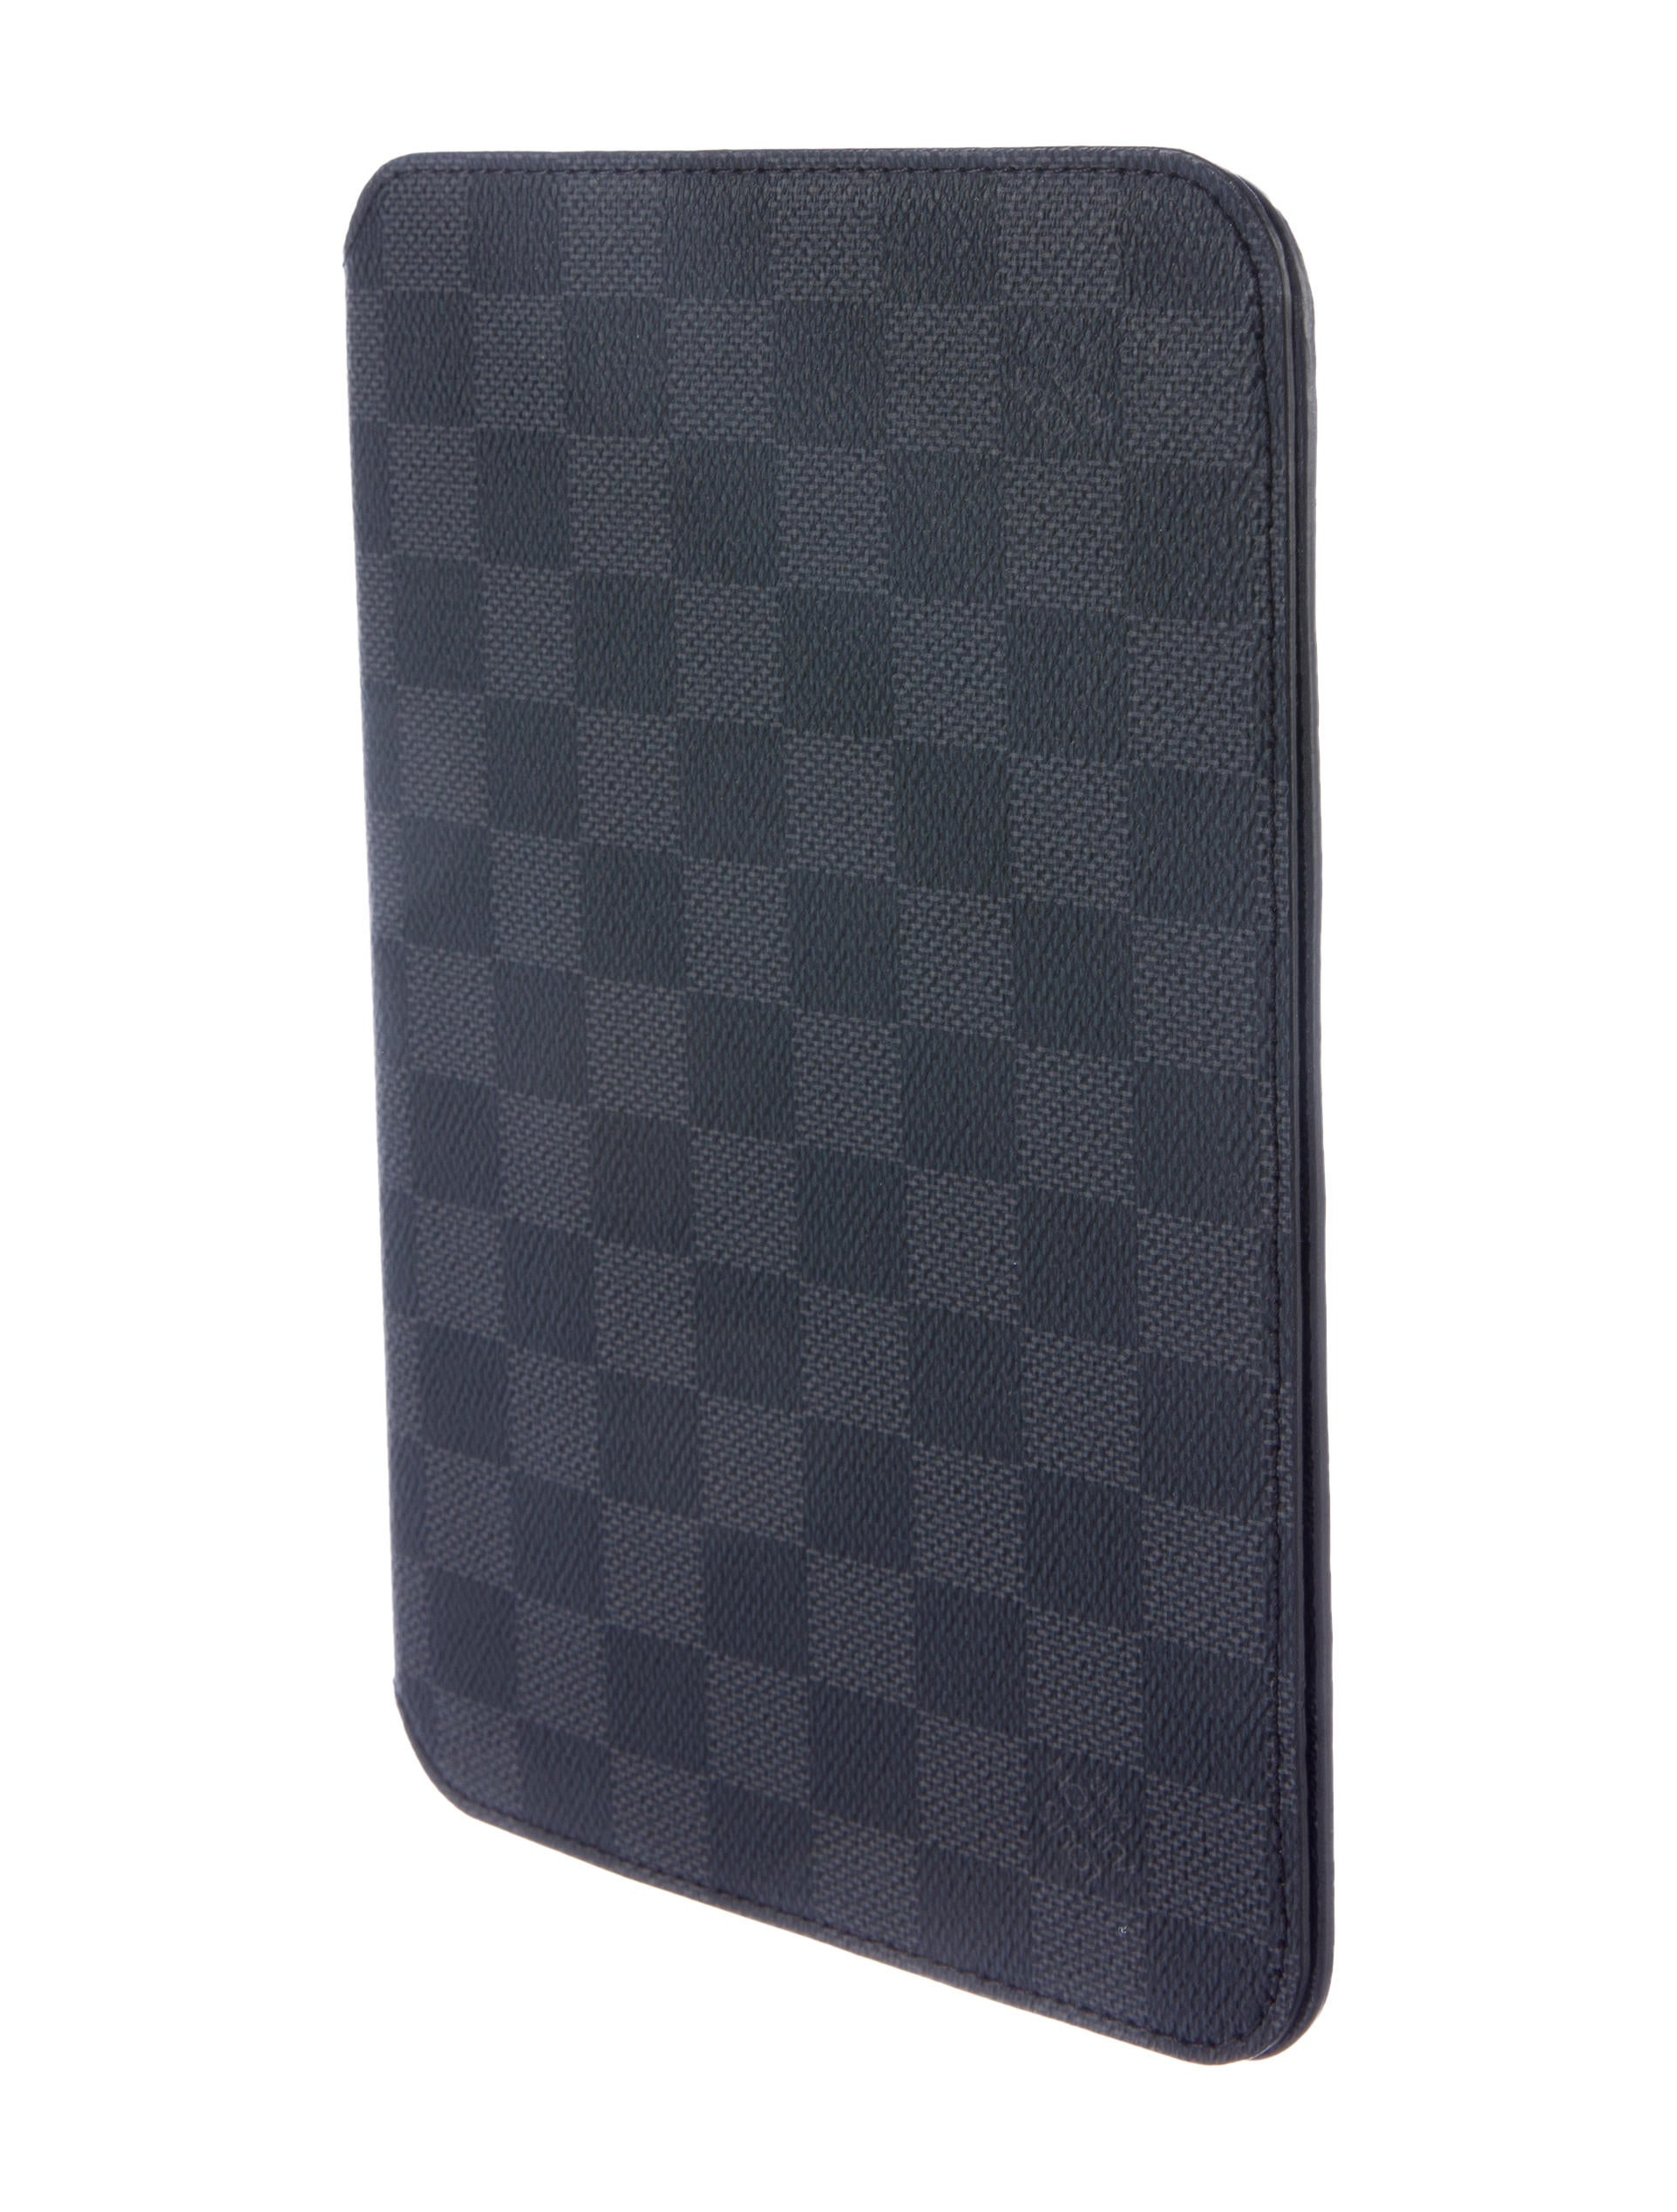 Louis Vuitton Damier Graphite Ipad Mini Folio Technology